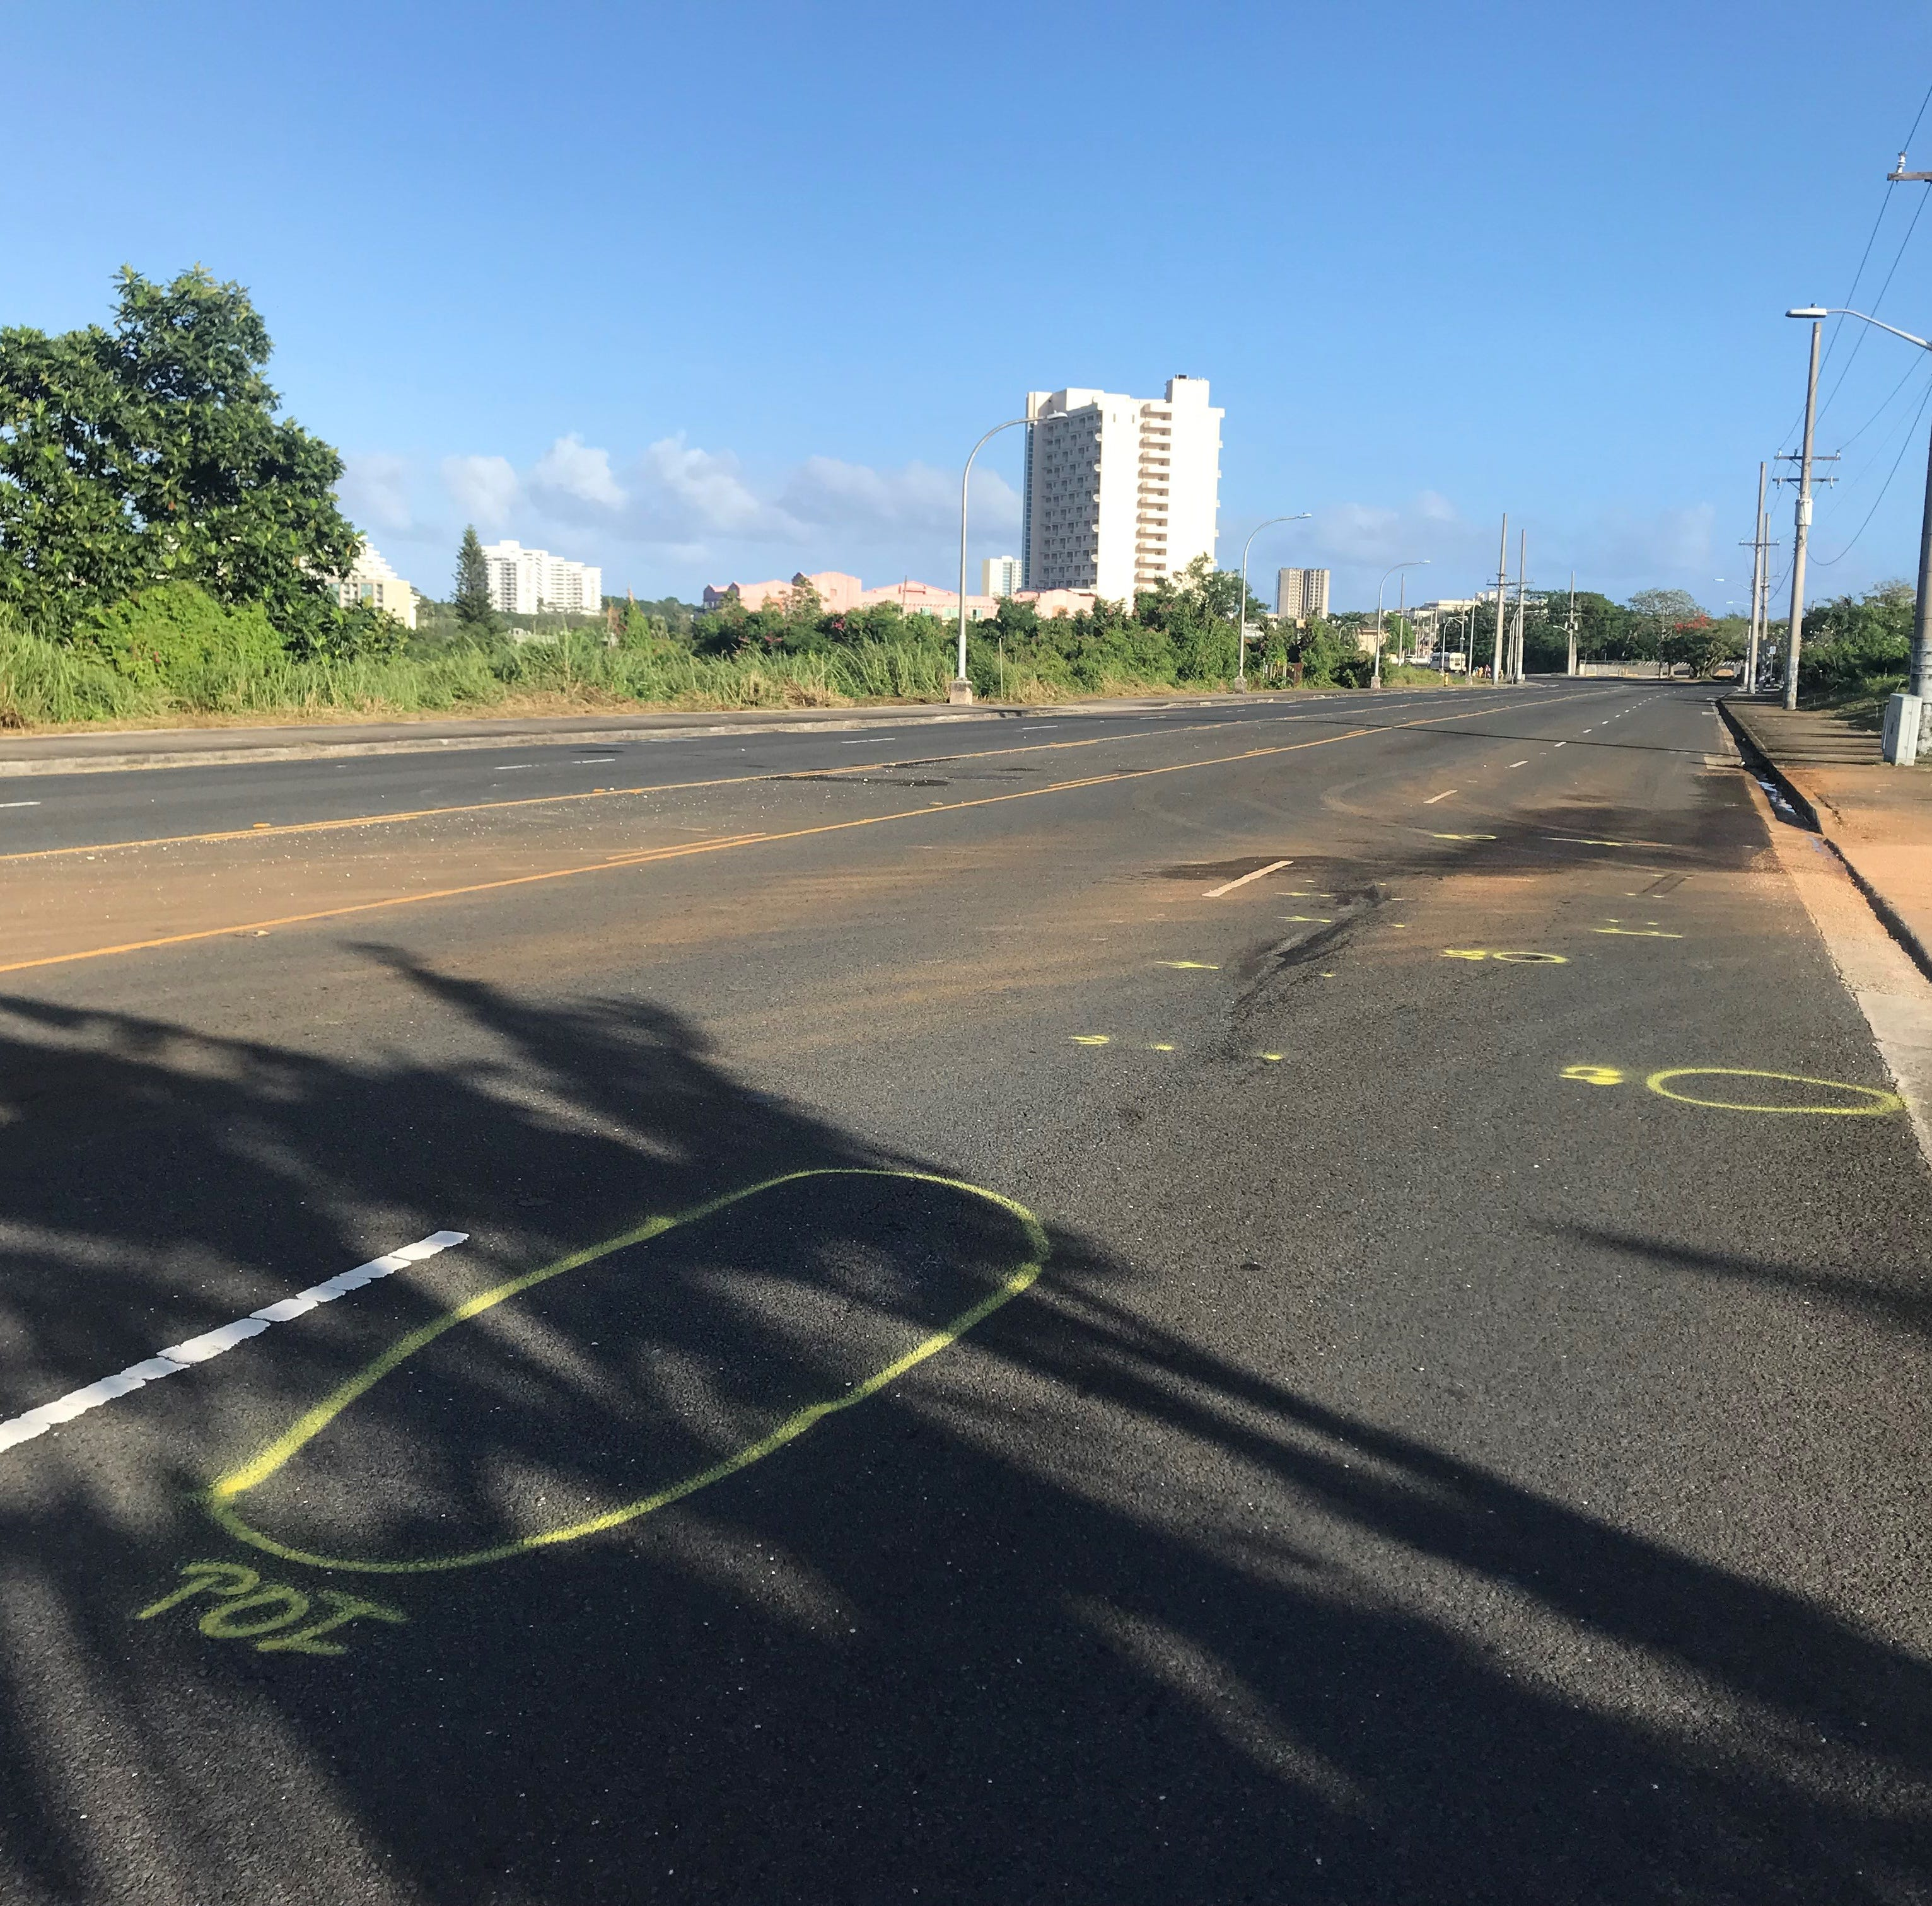 Sidney Sidro Sichiro, 45, identified as pedestrian killed in Sunday morning crash